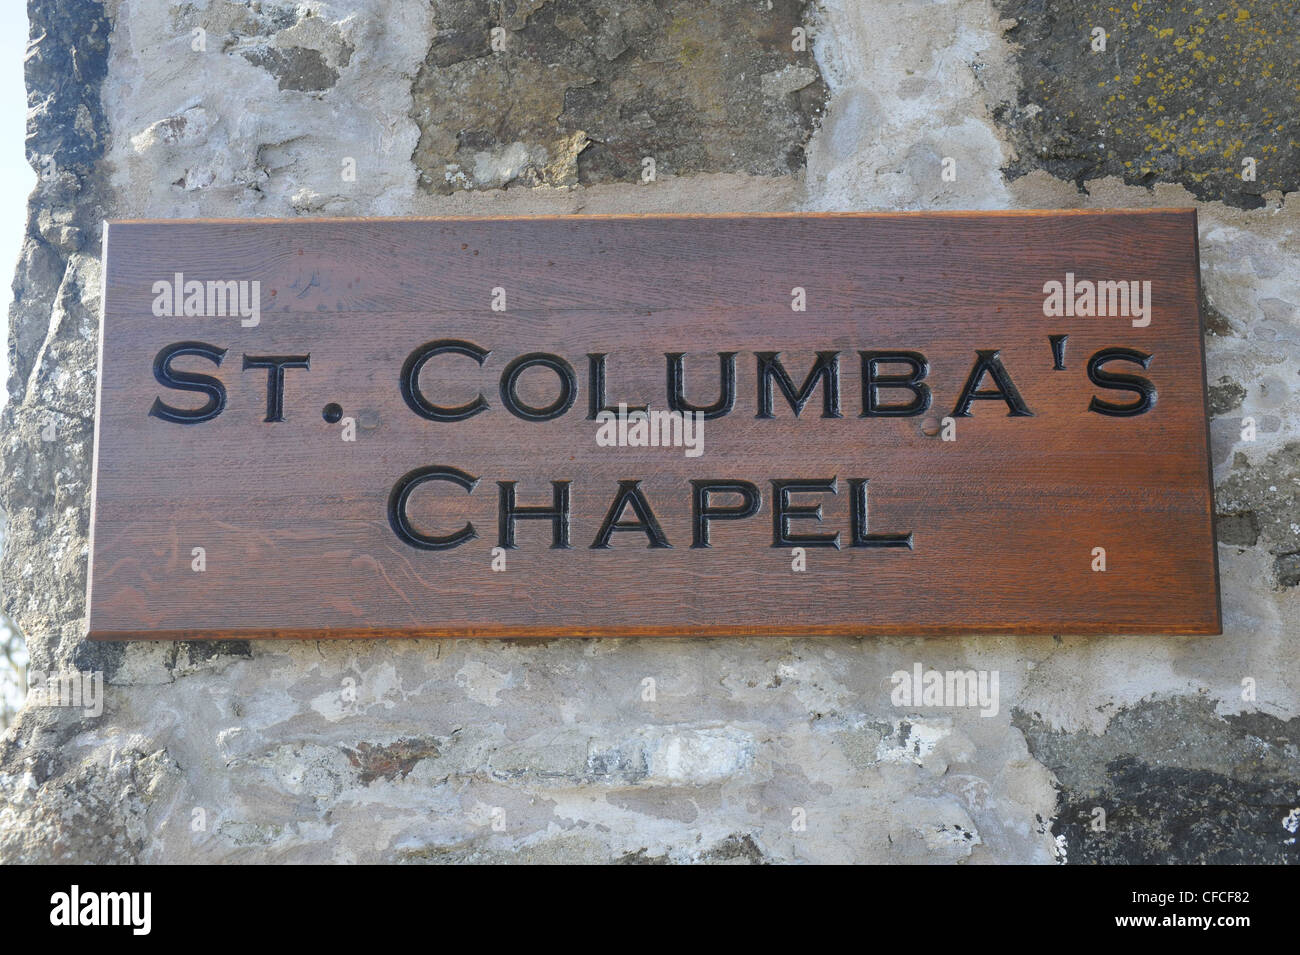 St Columba's Chapel sign. The Roman Catholic Church of St Columba on Canna, a small Island in the Inner Hebrides, - Stock Image